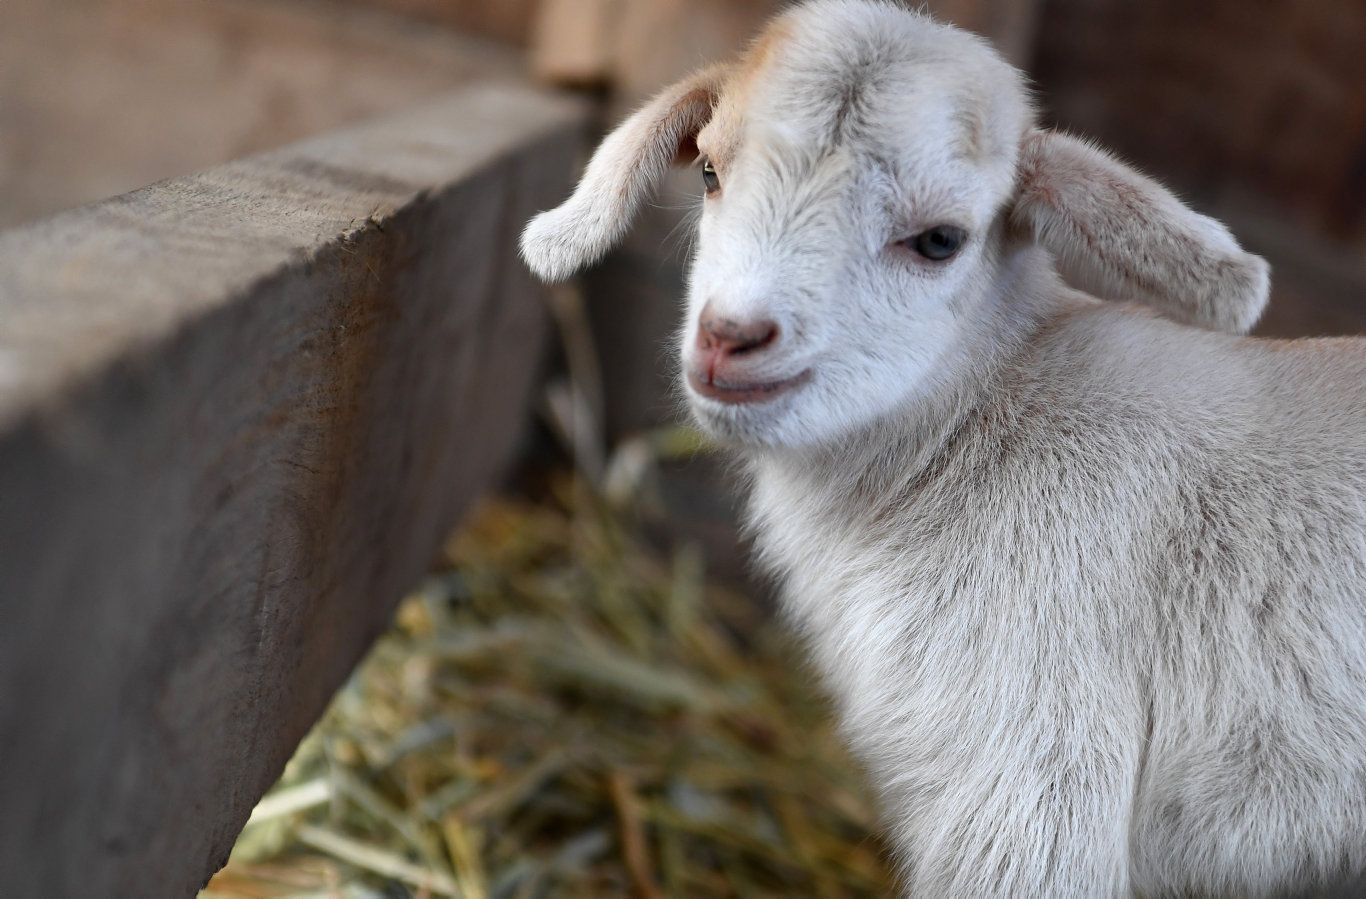 JOIN OUR RESCUE SQUAD: A baby goat at Splitters Farm.